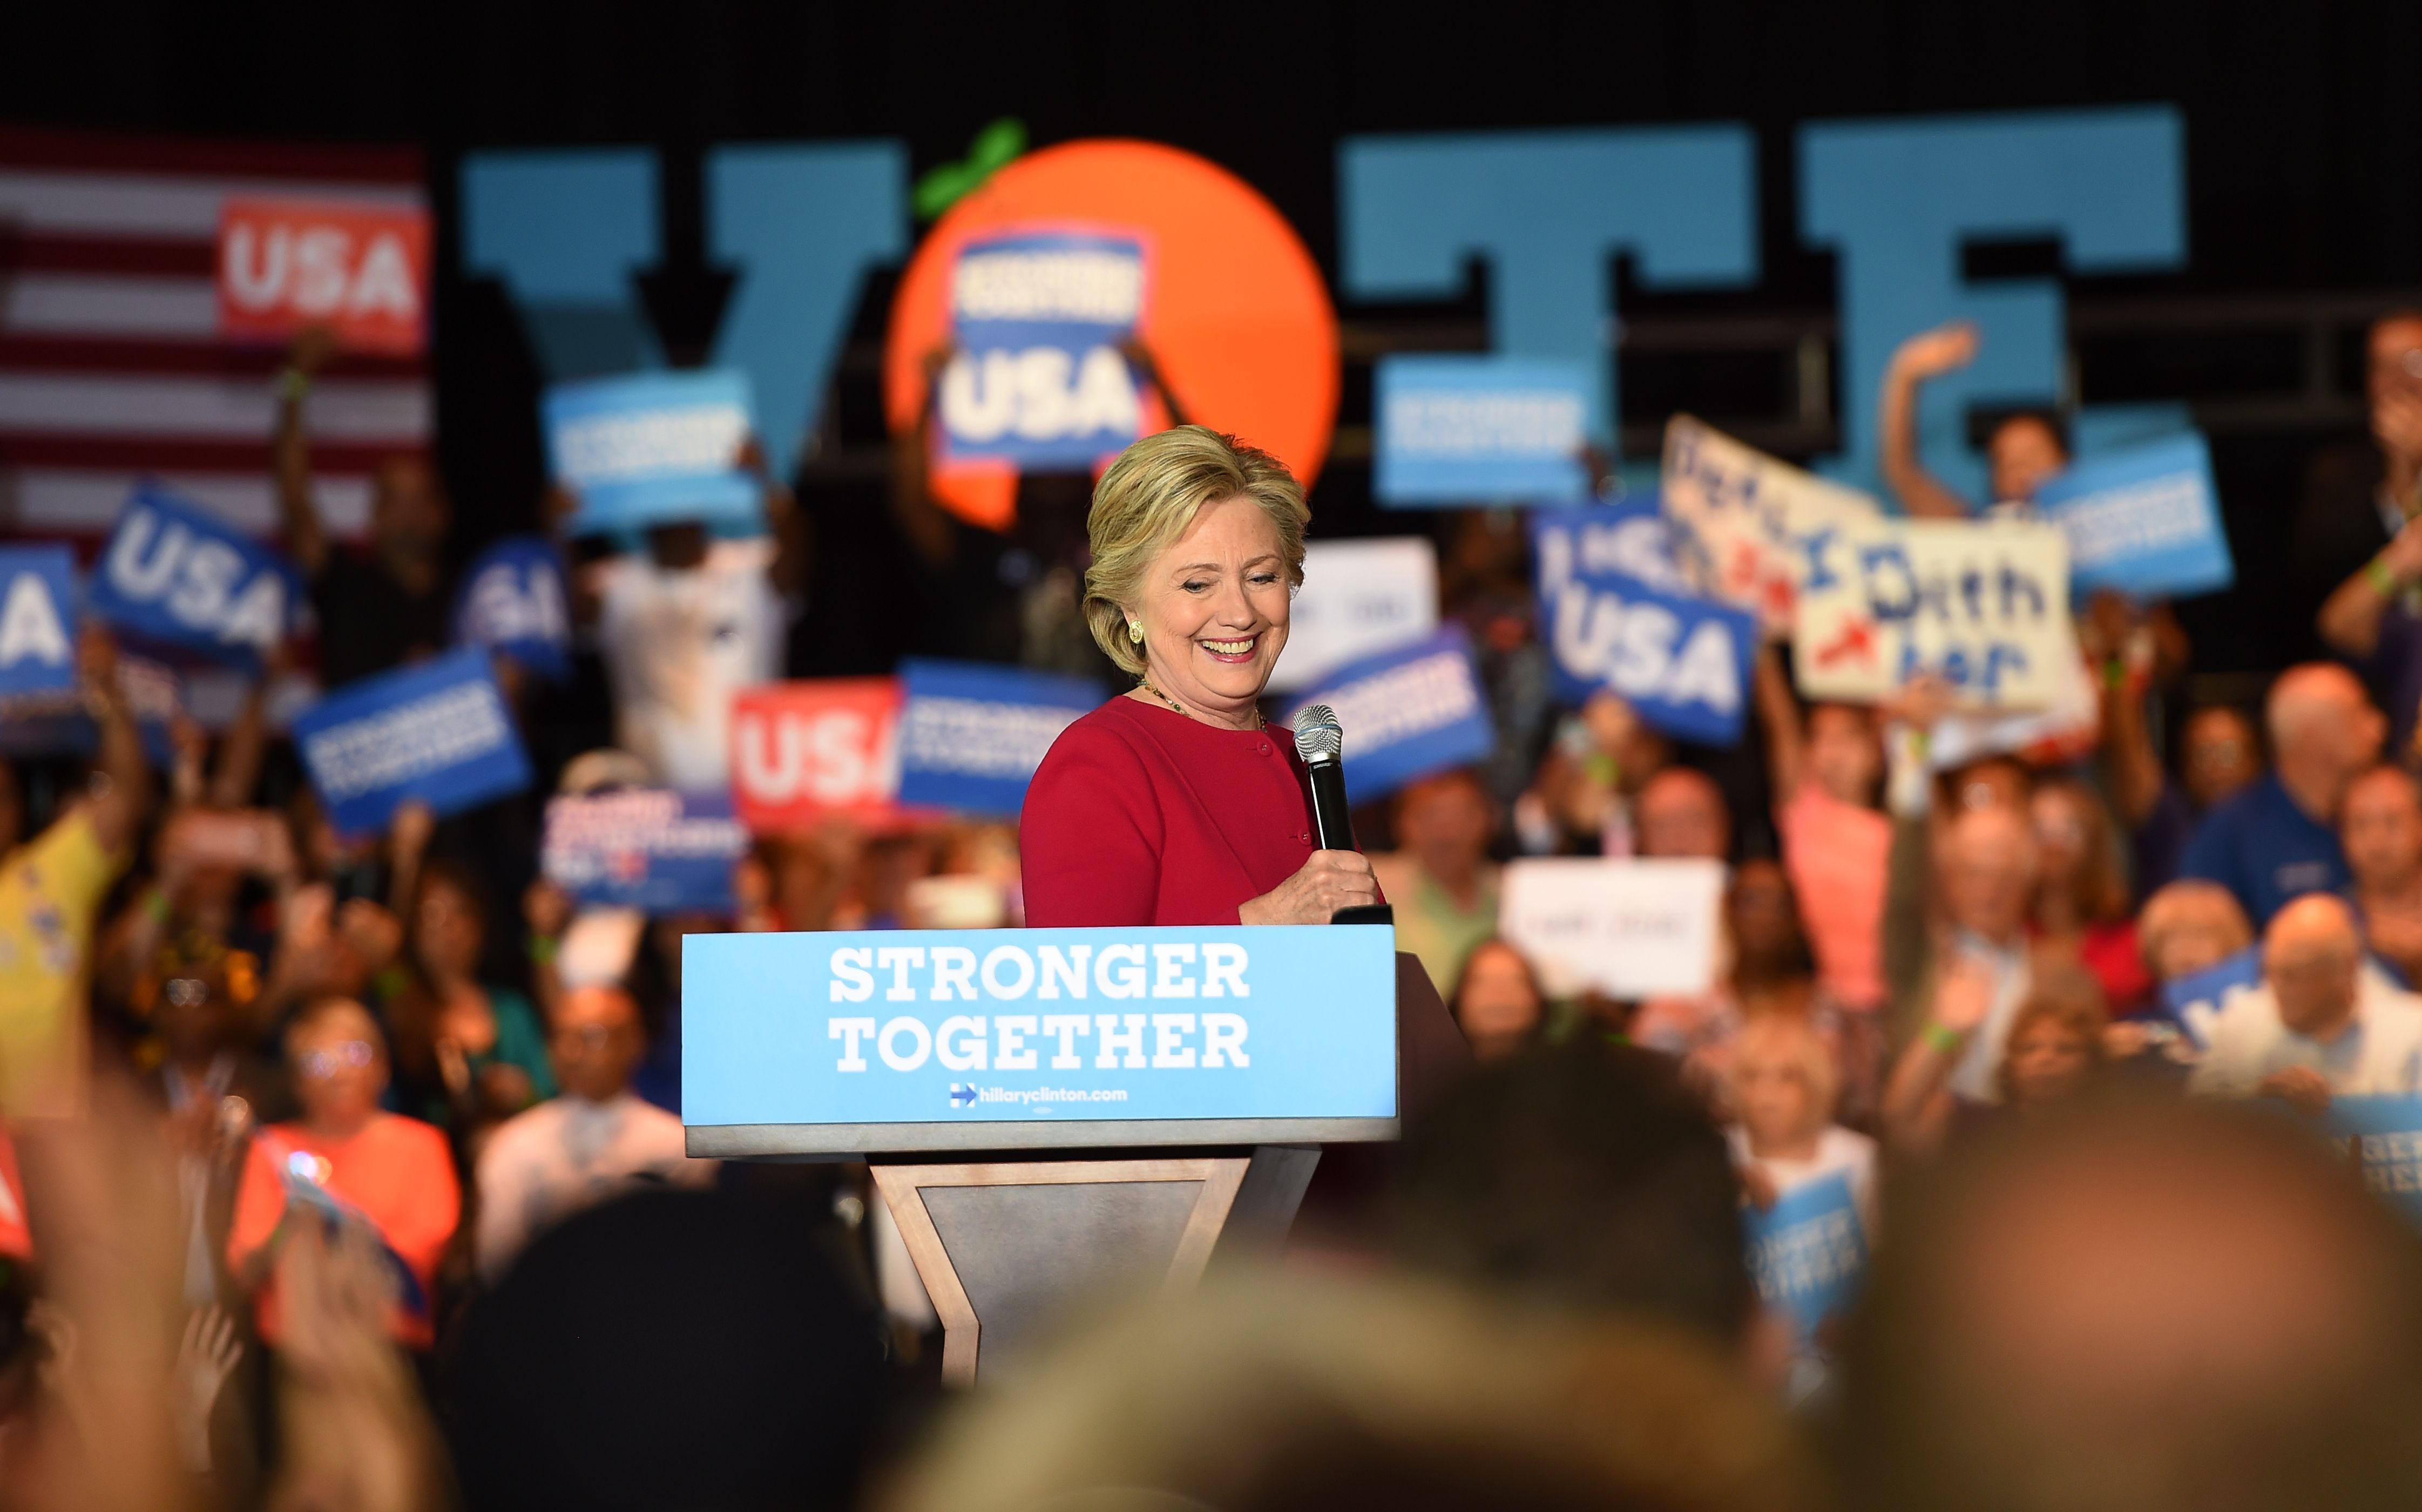 Democratic presidential nominee Hillary Clinton addresses an early vote rally at Broward College in Coconut Creek, Florida.